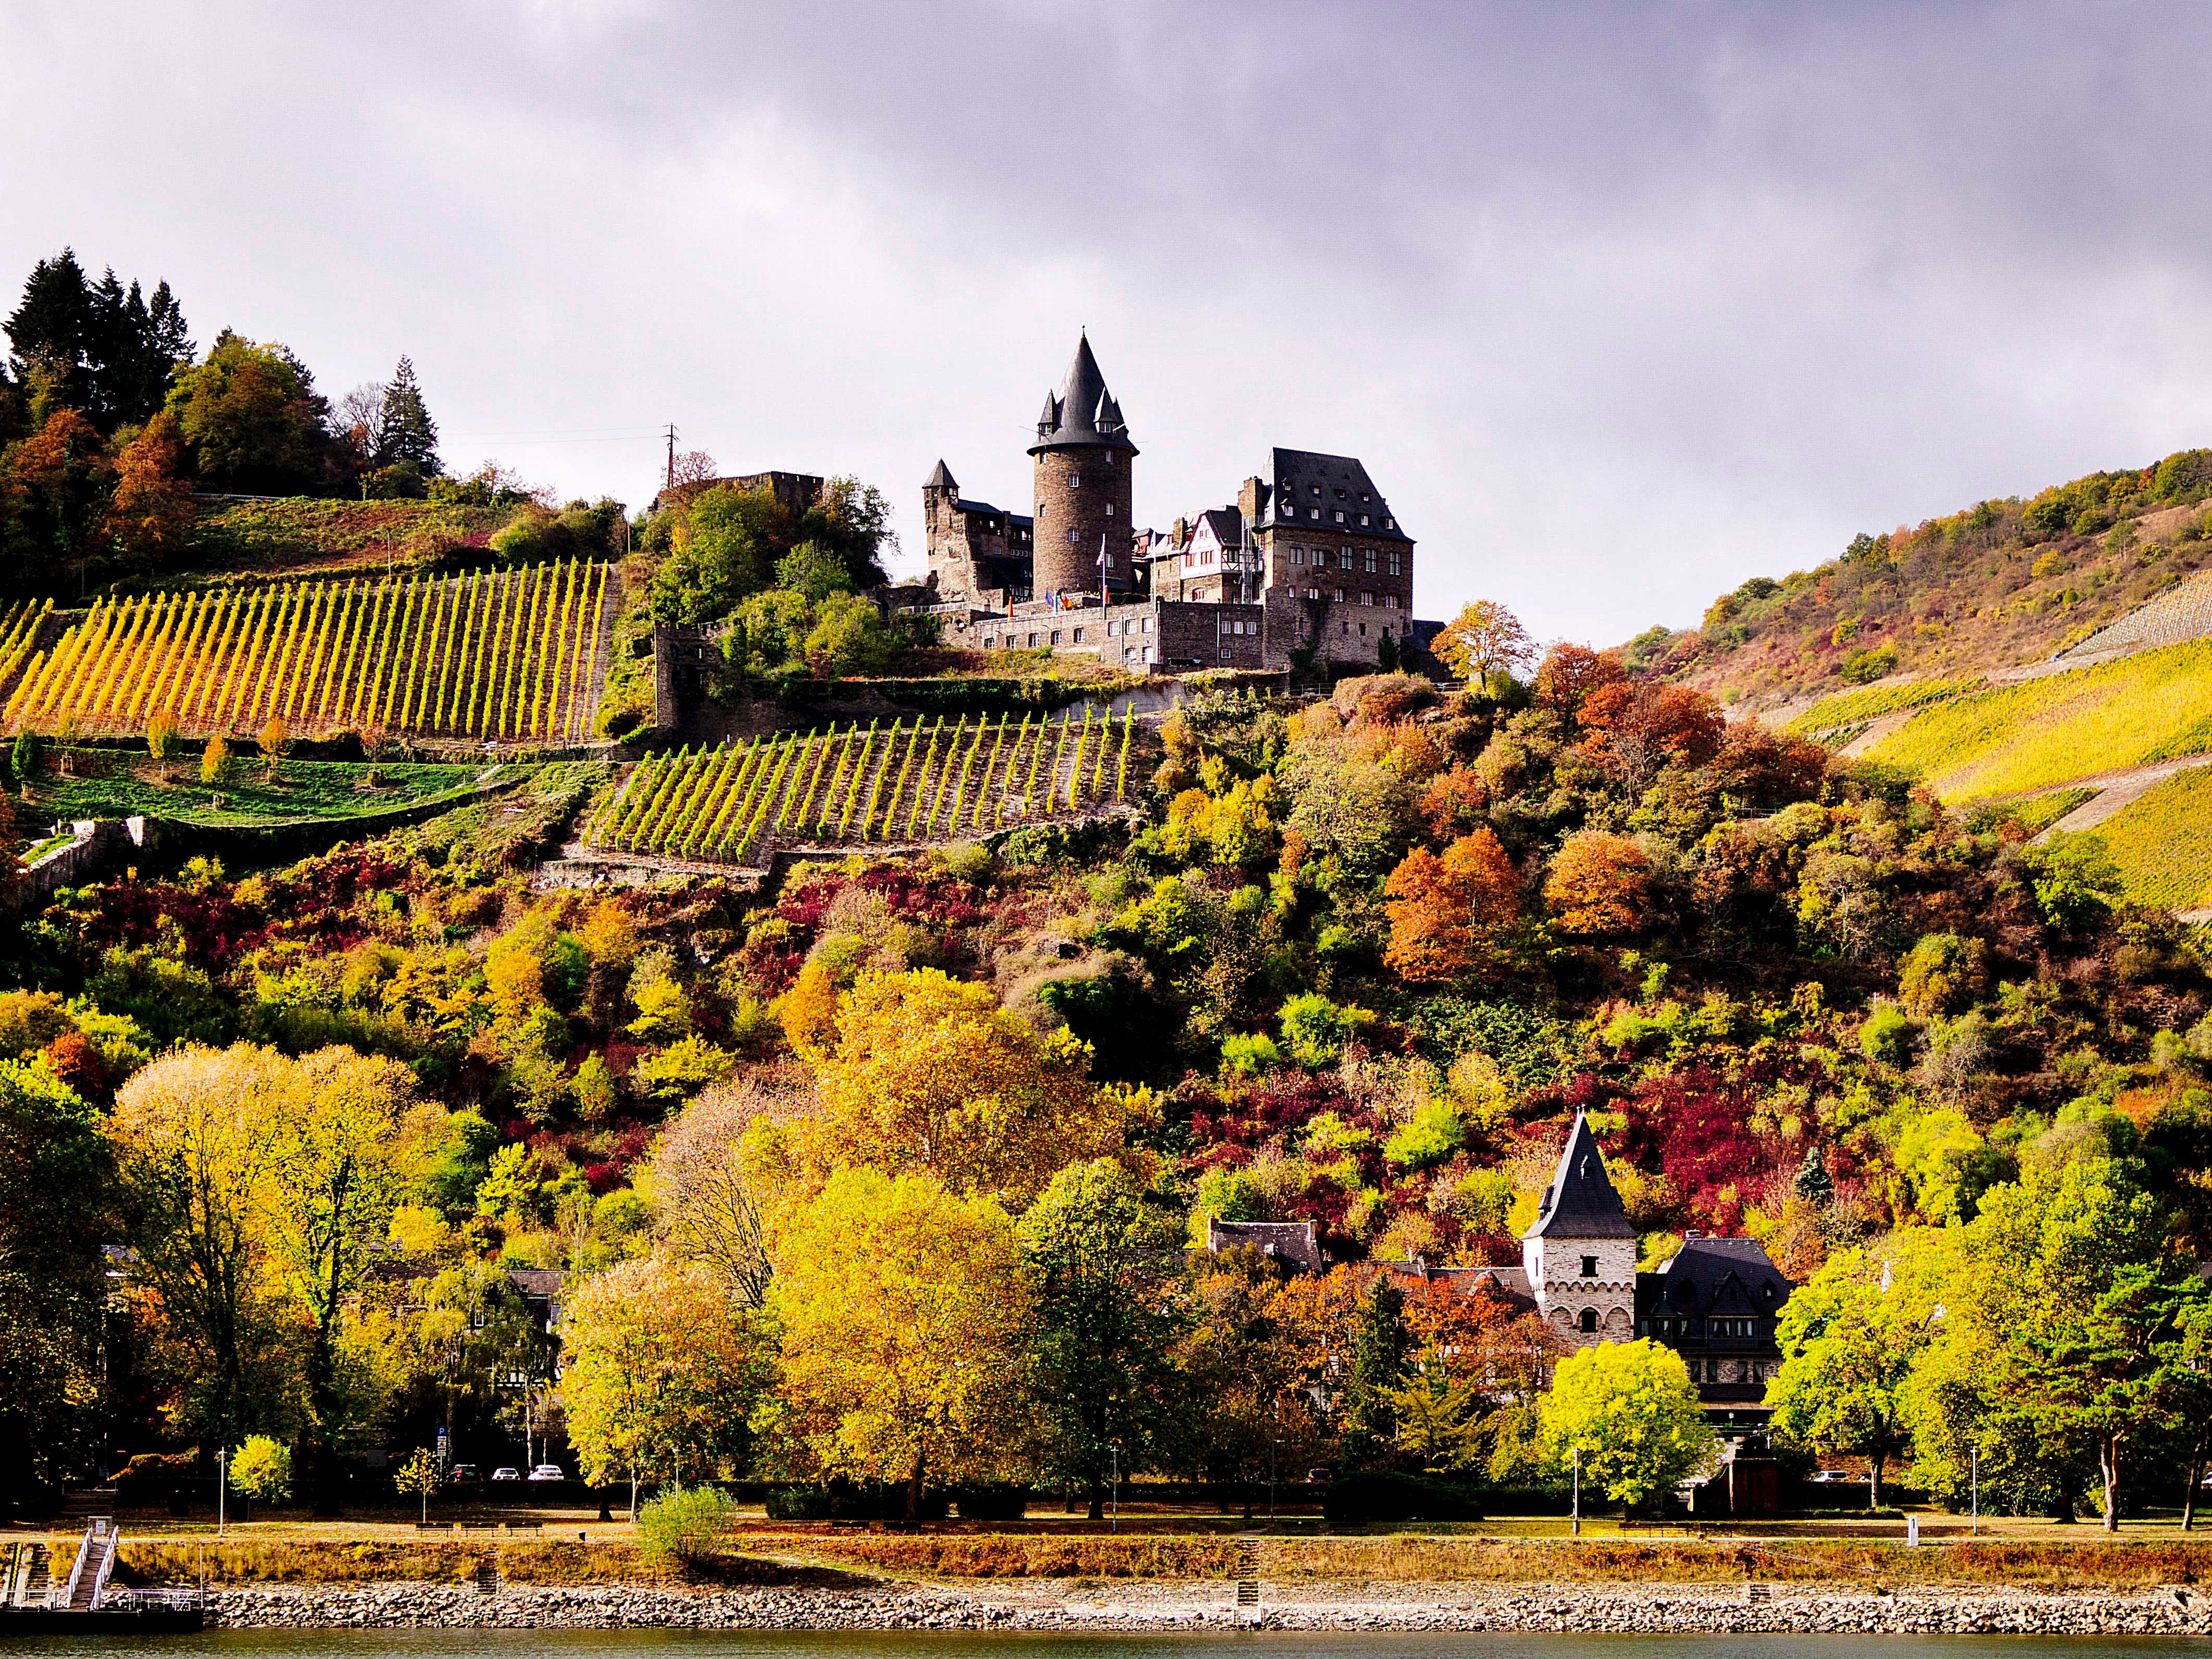 An old castle is seen above colorful trees and vineyard looking over the river Rhine near the village of Bacharach, Germany, on Wednesday, Oct. 24, 2018.